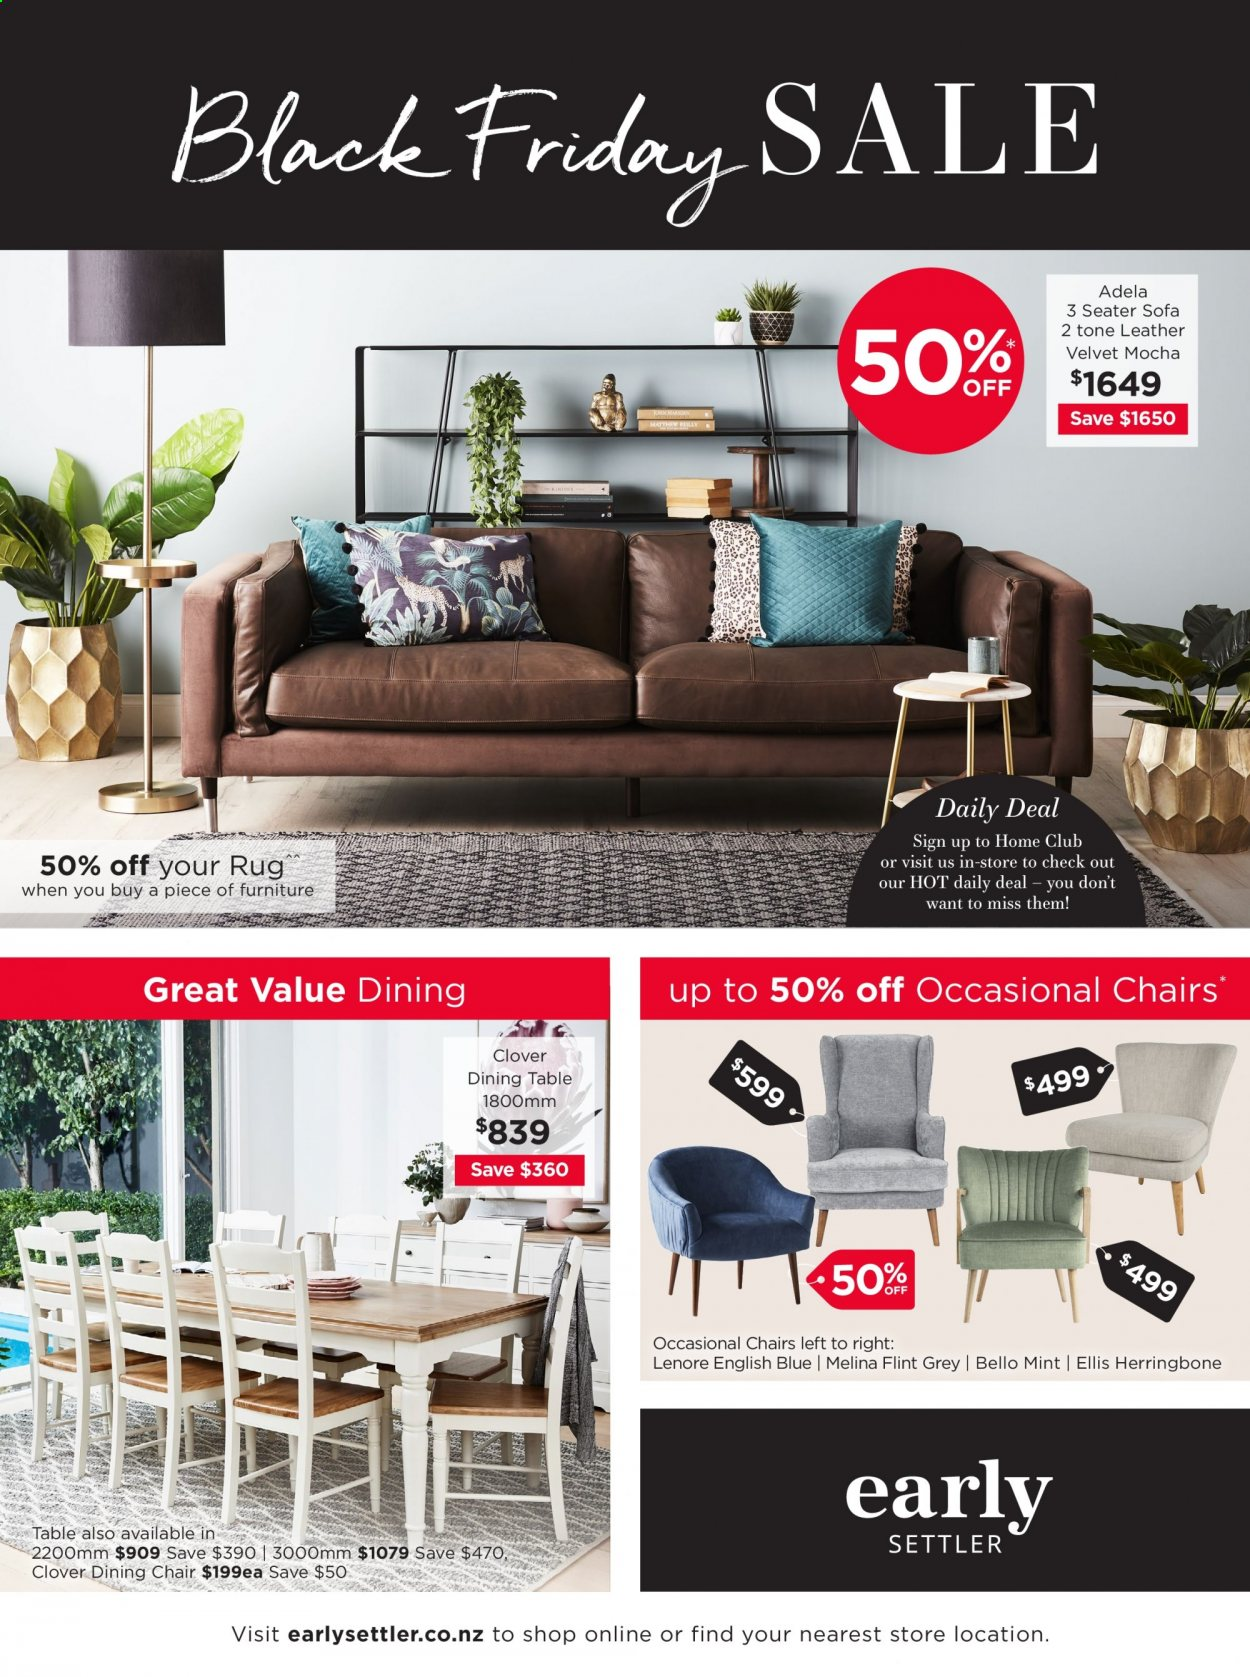 Early Settler mailer - 12.11.2020 - 29.11.2020 - Sales products - dining table, furniture, mint, rug, sofa, table, chair, black friday, dining chair. Page 1.